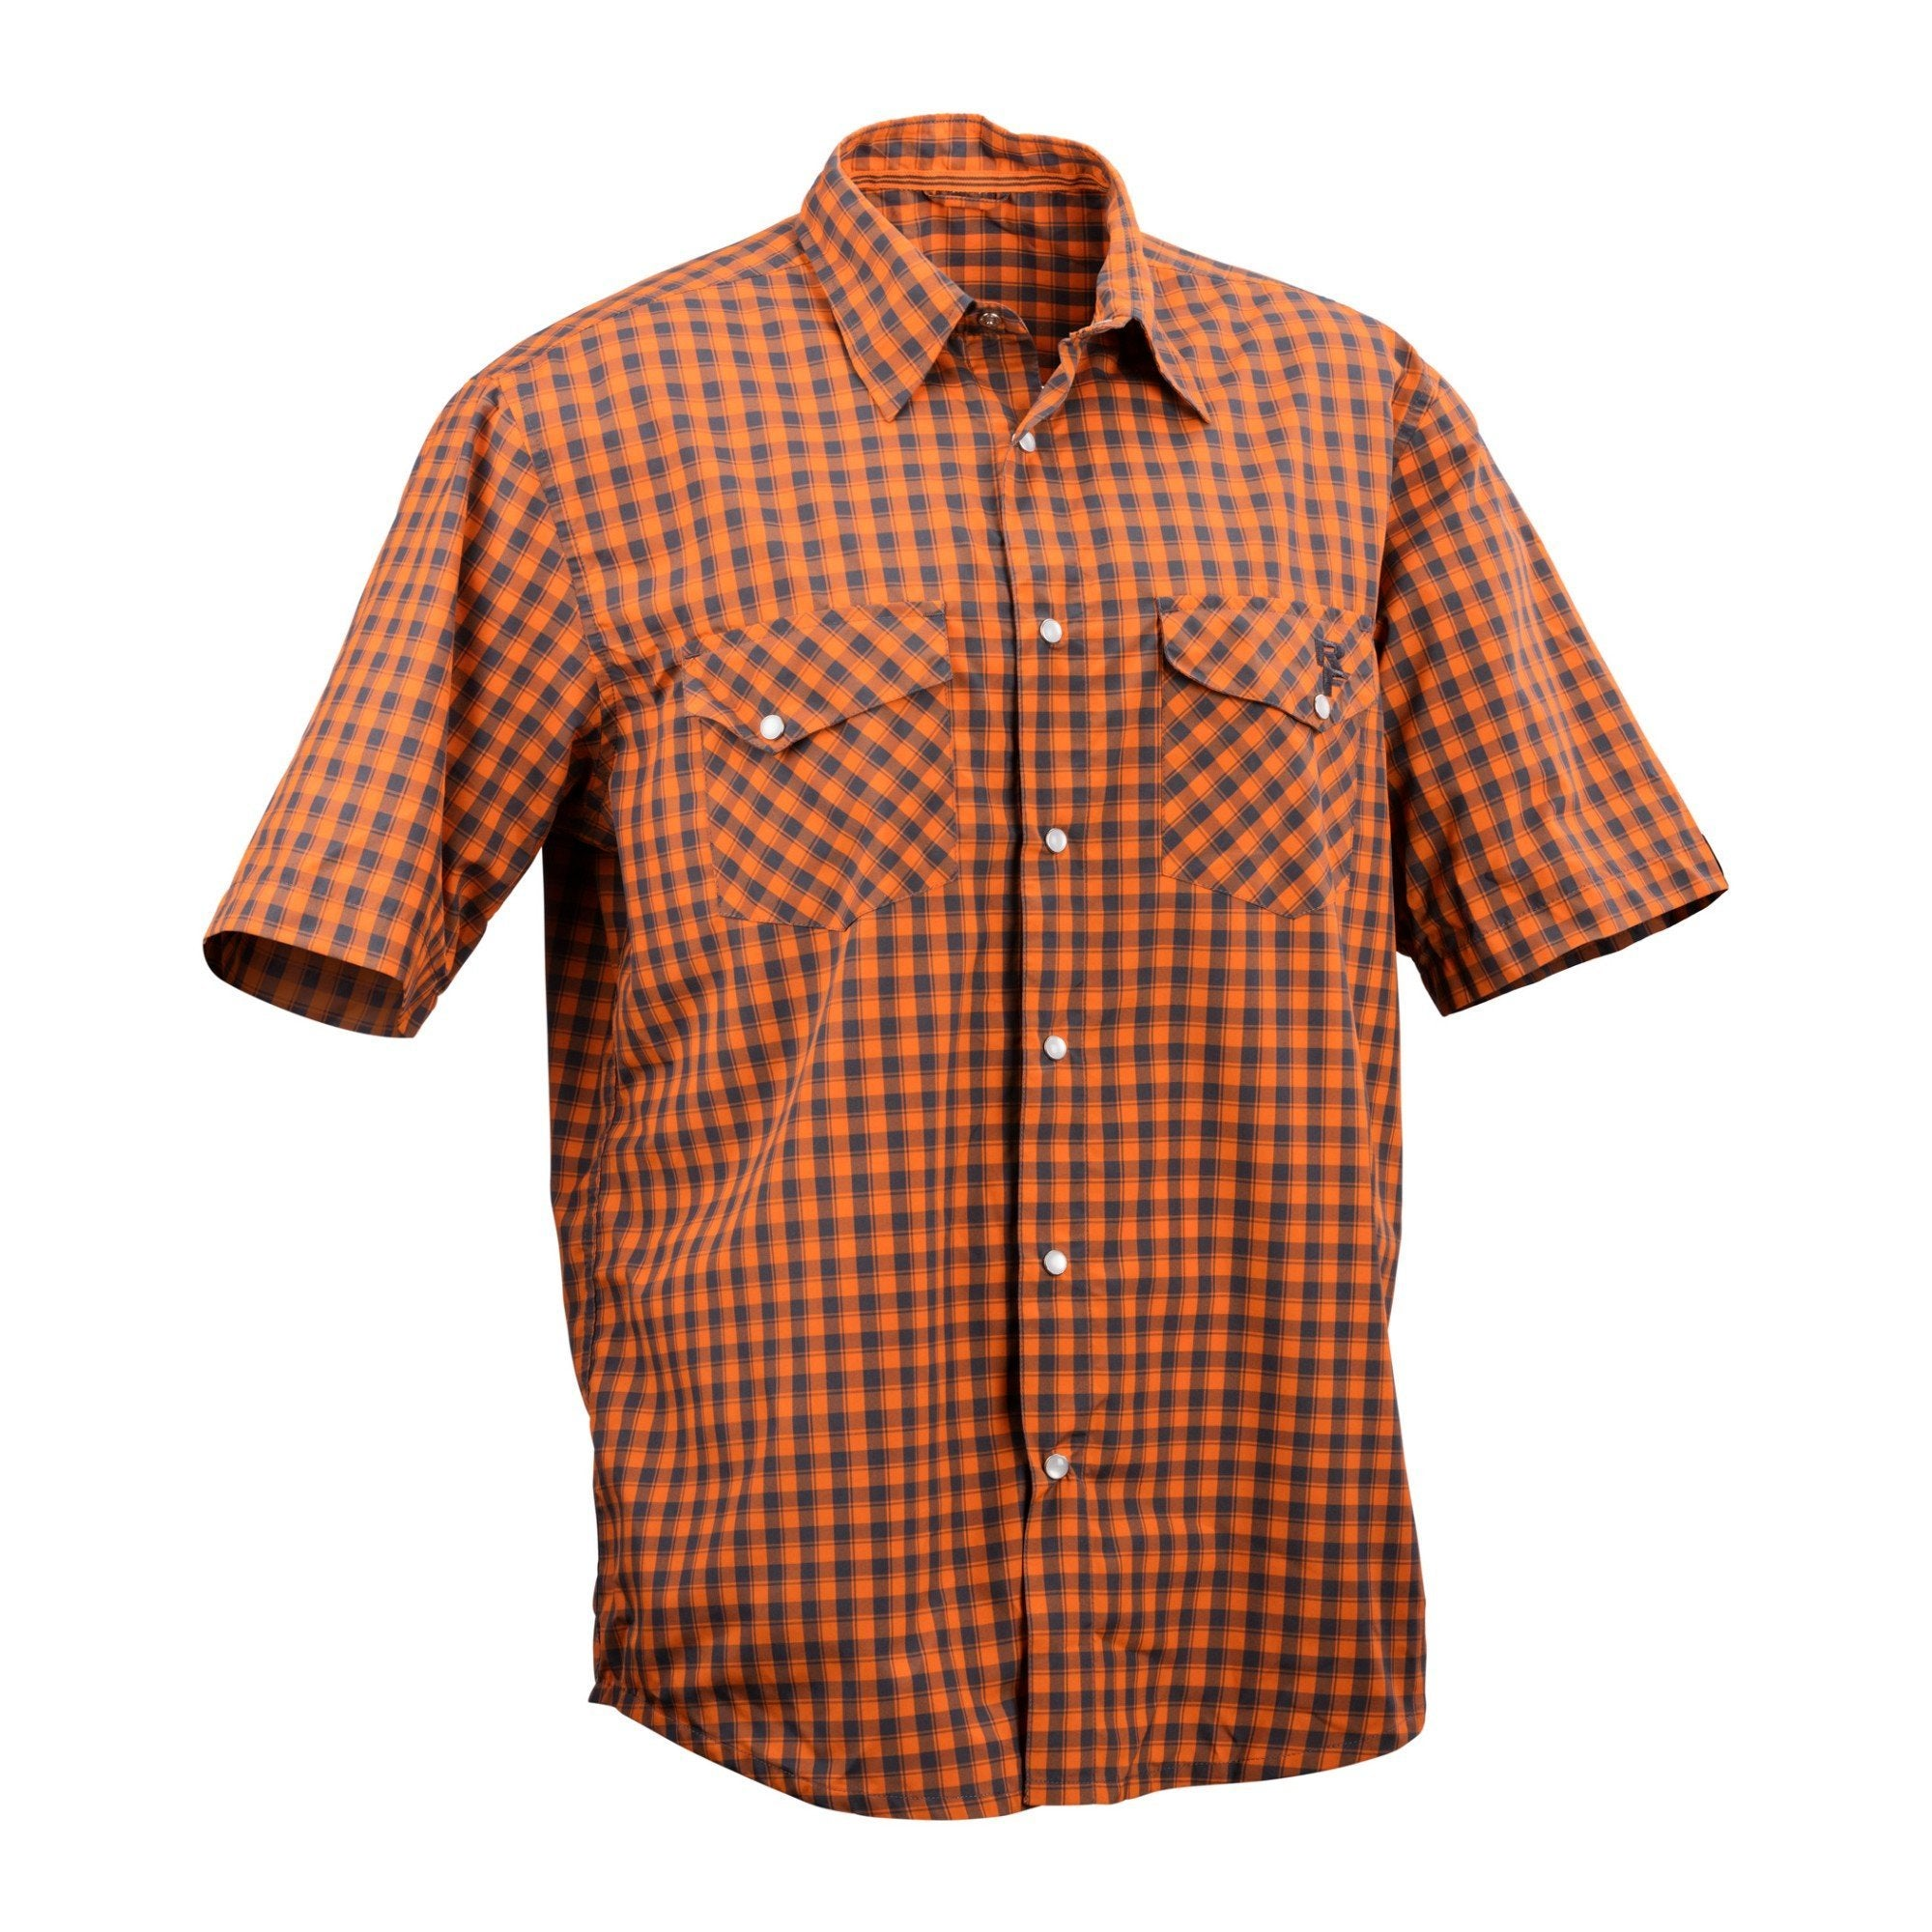 Race Face Cycle Clothing > Jersey & Jackets S / Orange Race Face Shop Shirt